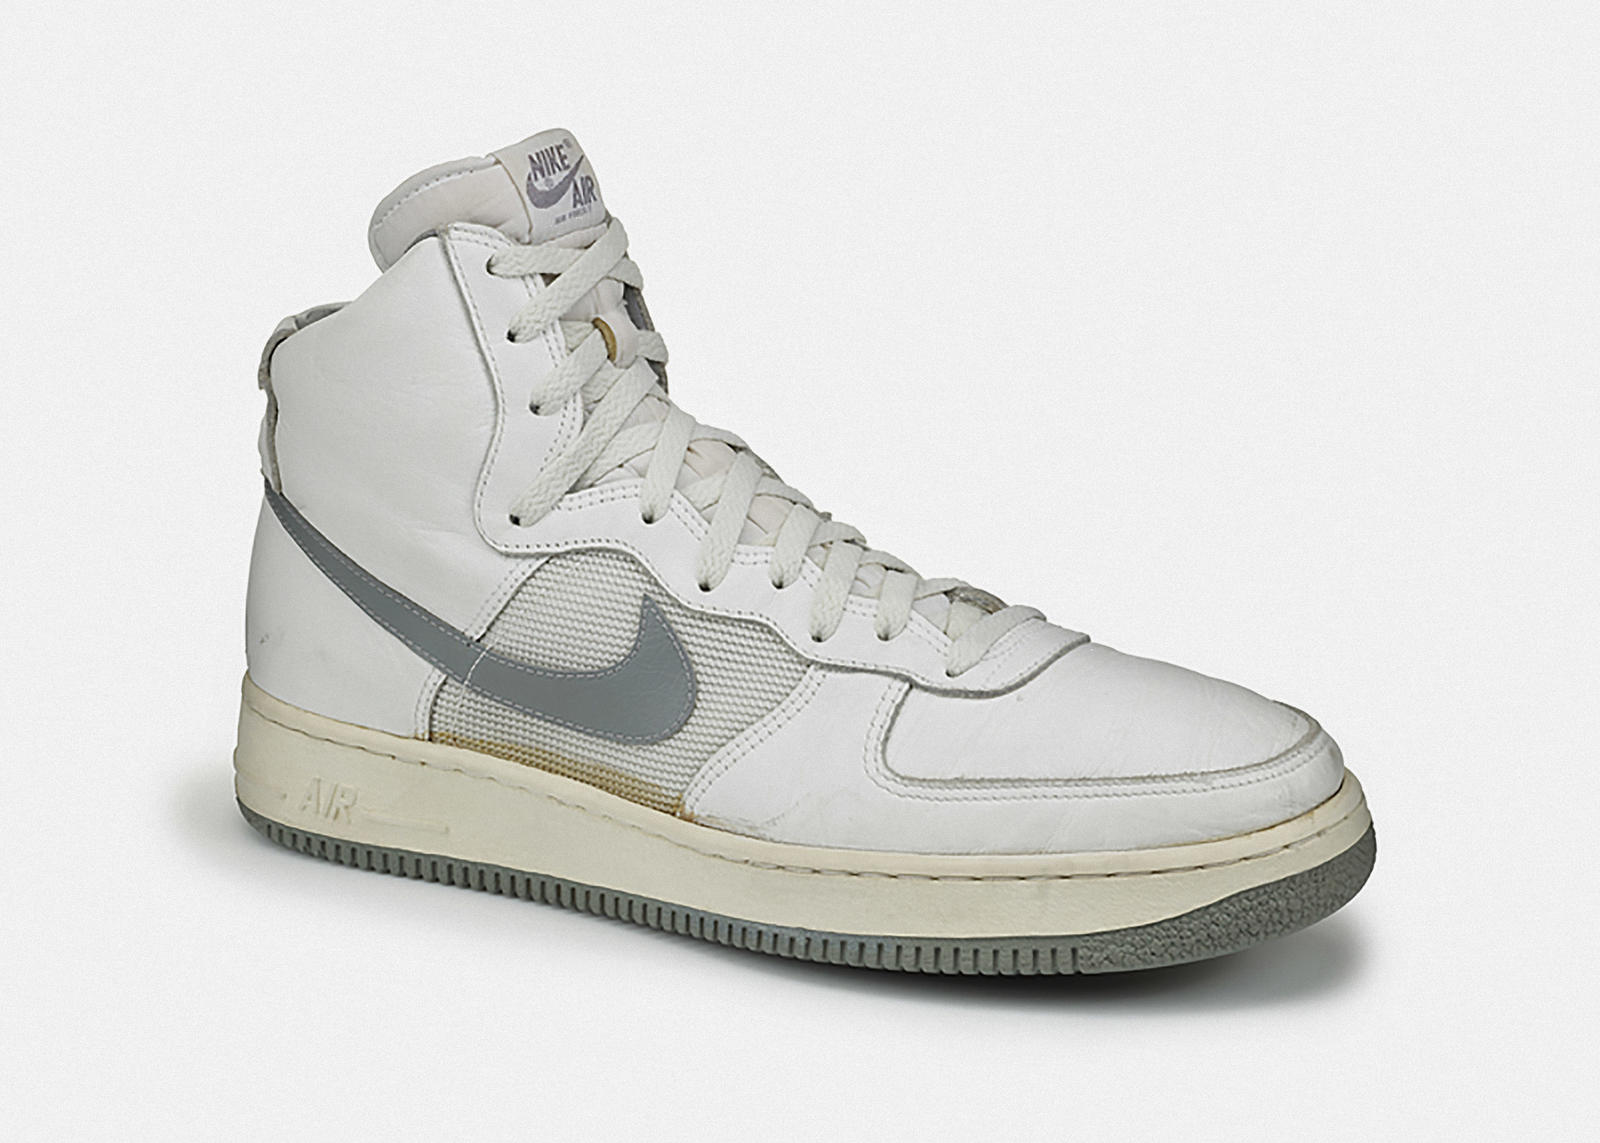 sports shoes b4d7d f2609 Designer Bruce Kilgore Dishes on Nike Air Force 1 5